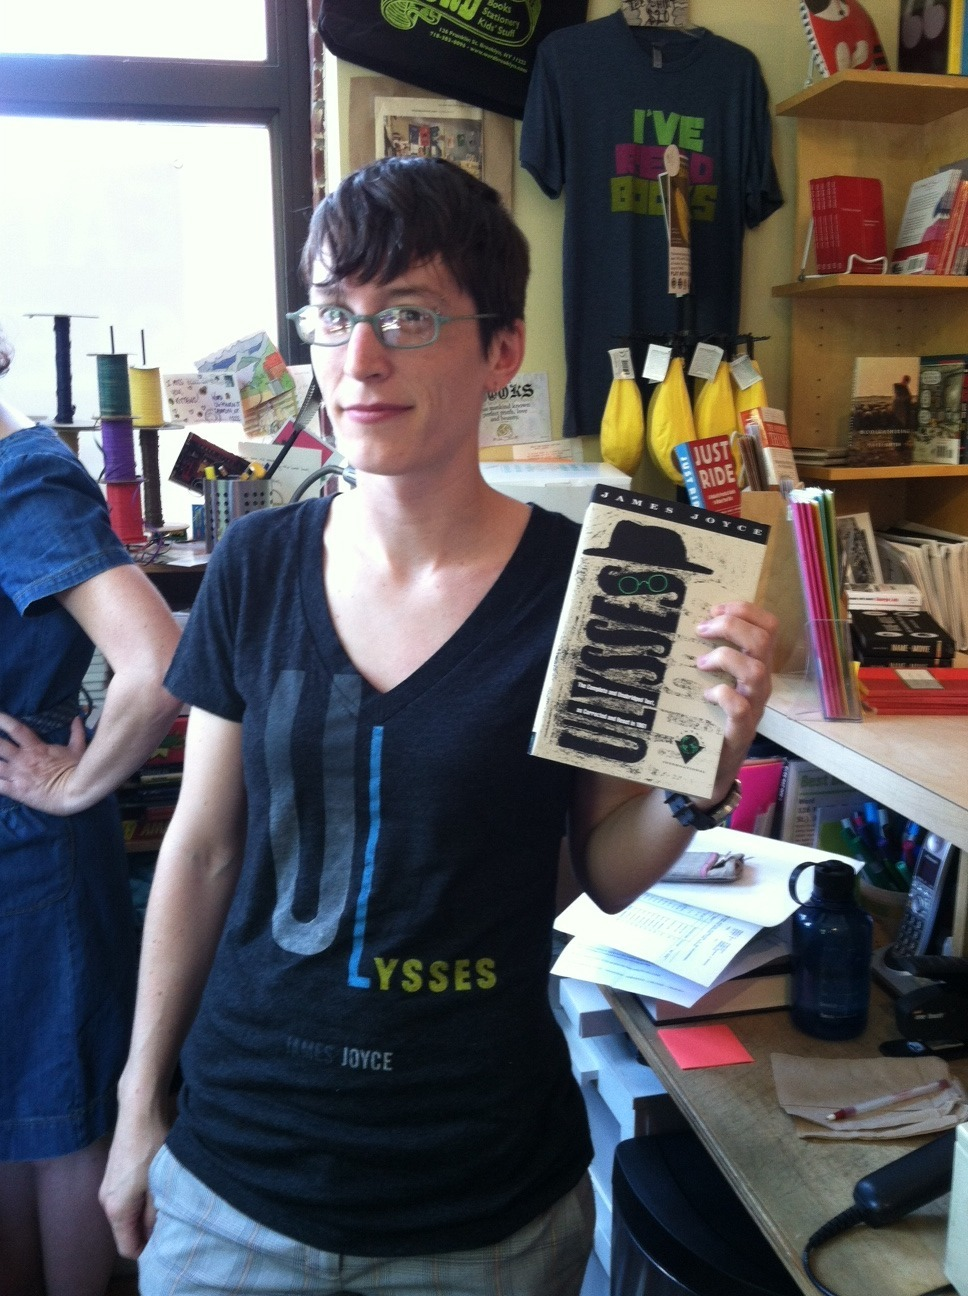 wordbrooklyn:  New manager Emily, caught in the middle of selling Ulysses to a customer WHILE WEARING A ULYSSES T-SHIRT. We think she'll do just fine.  NURD.